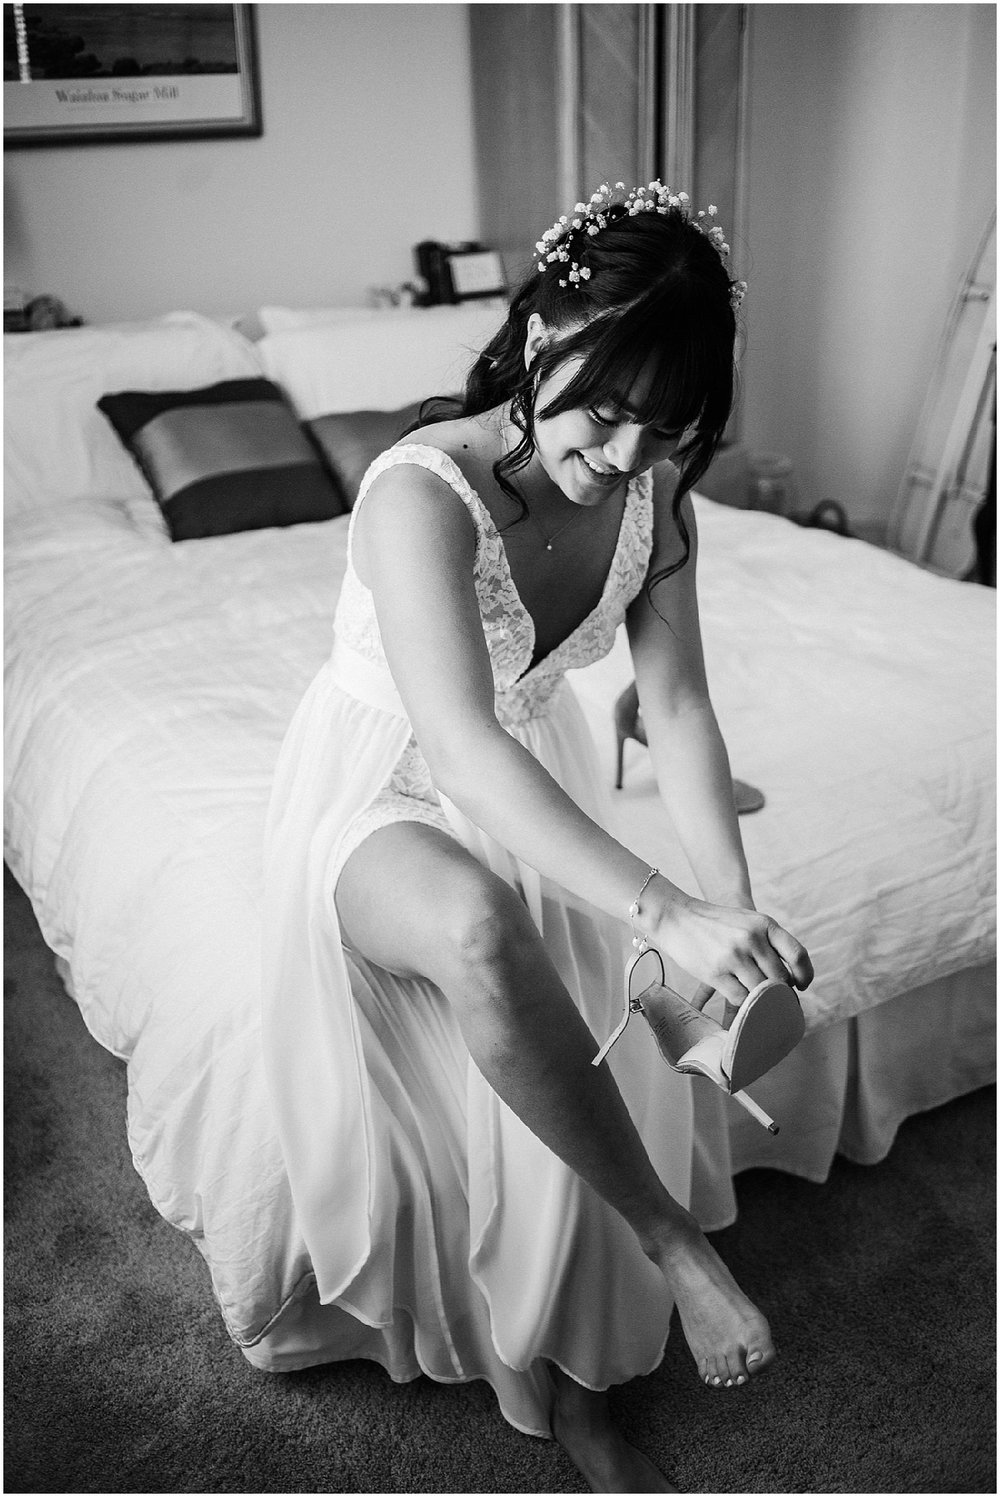 Downtown-Albuquerque-Wedding-Photos_Downtown-Contemporary-Art-Gallery_Albuquerque-New-Mexico_Albuquerque-Wedding-Photographer_0010.jpg